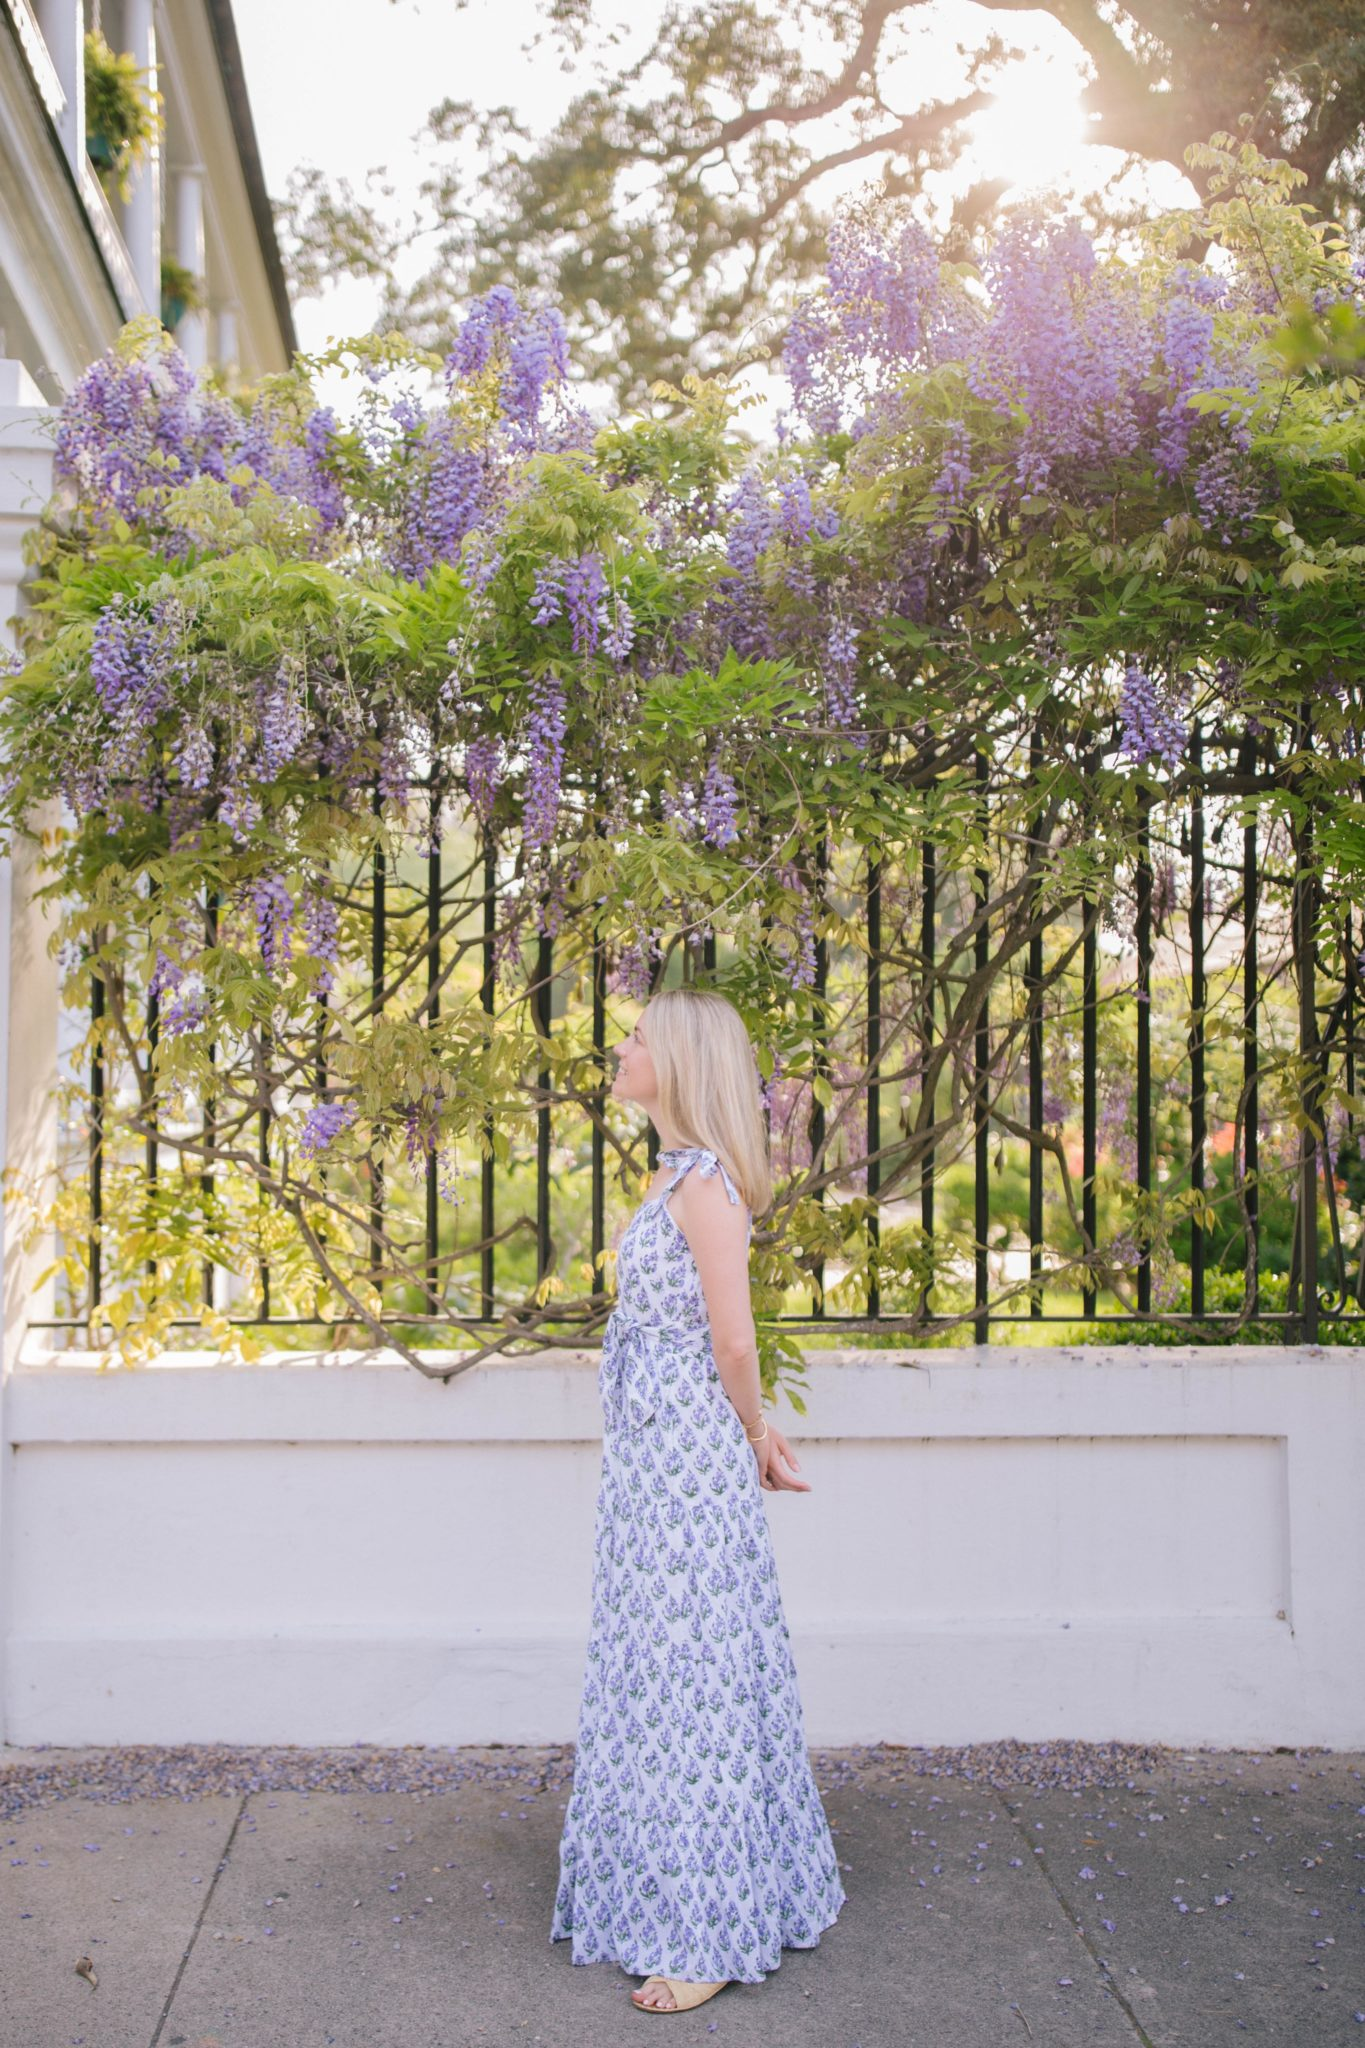 The best blooming flowers to see in Charleston in the spring | Rhyme & Reason